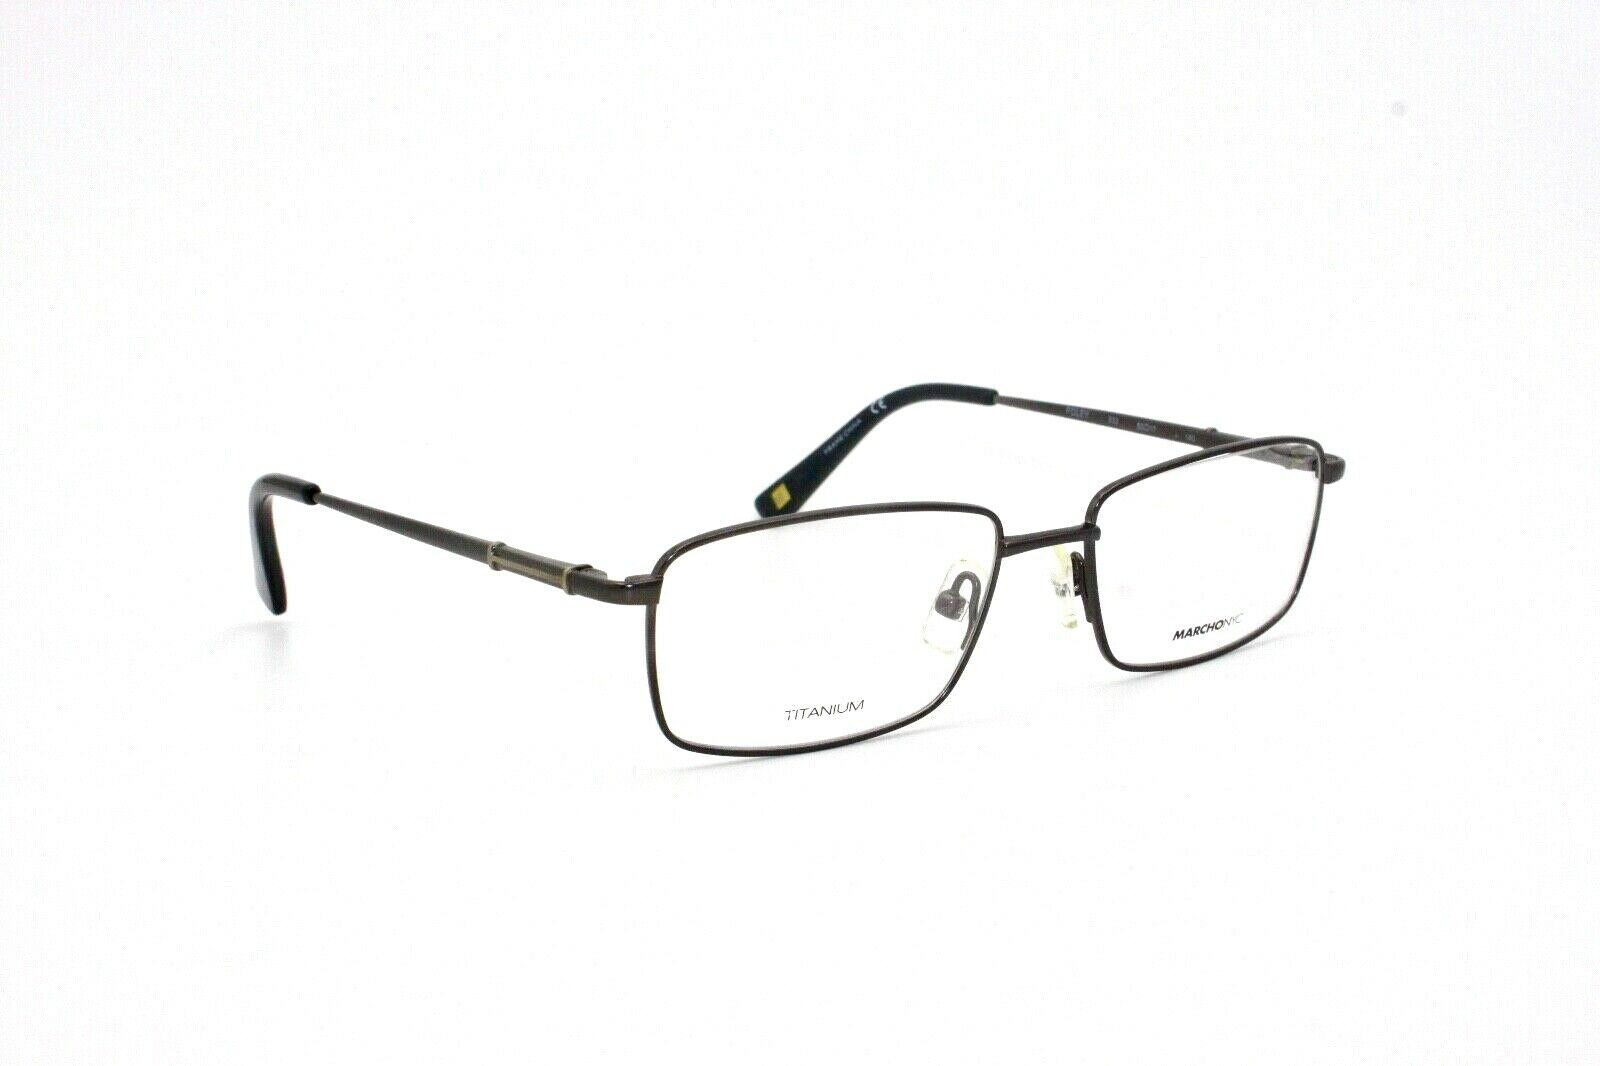 Marchon NYC East Side Titanium Foley 033 53 17 140 53 17 - Mydesigneroptic